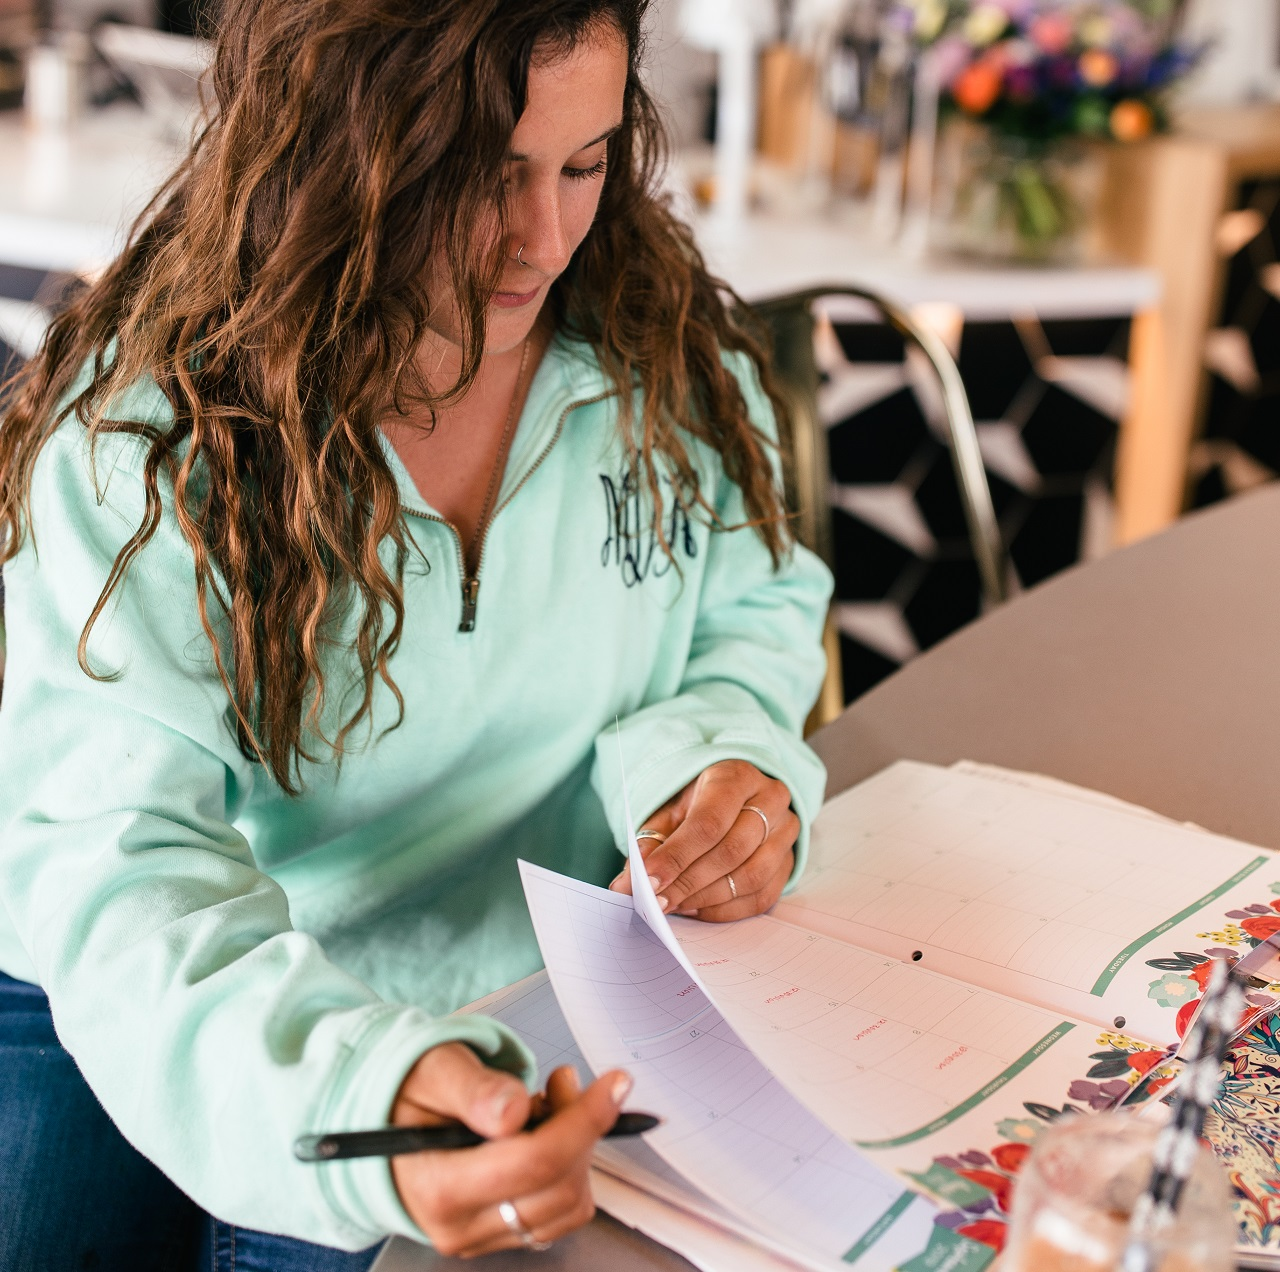 woman looking down at planner trying to get organized